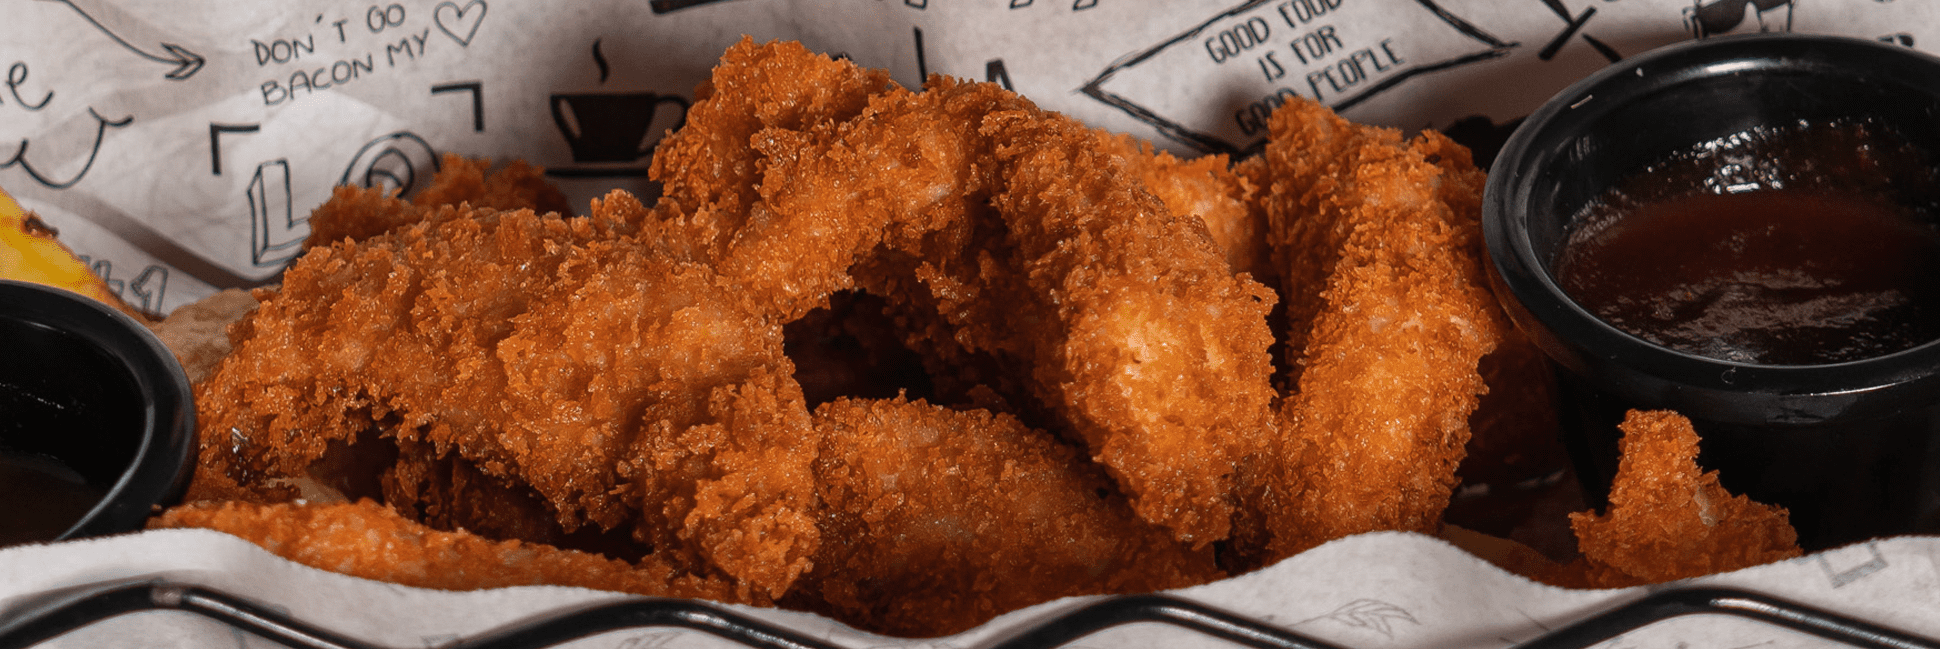 Chicken Tenders - Detalle